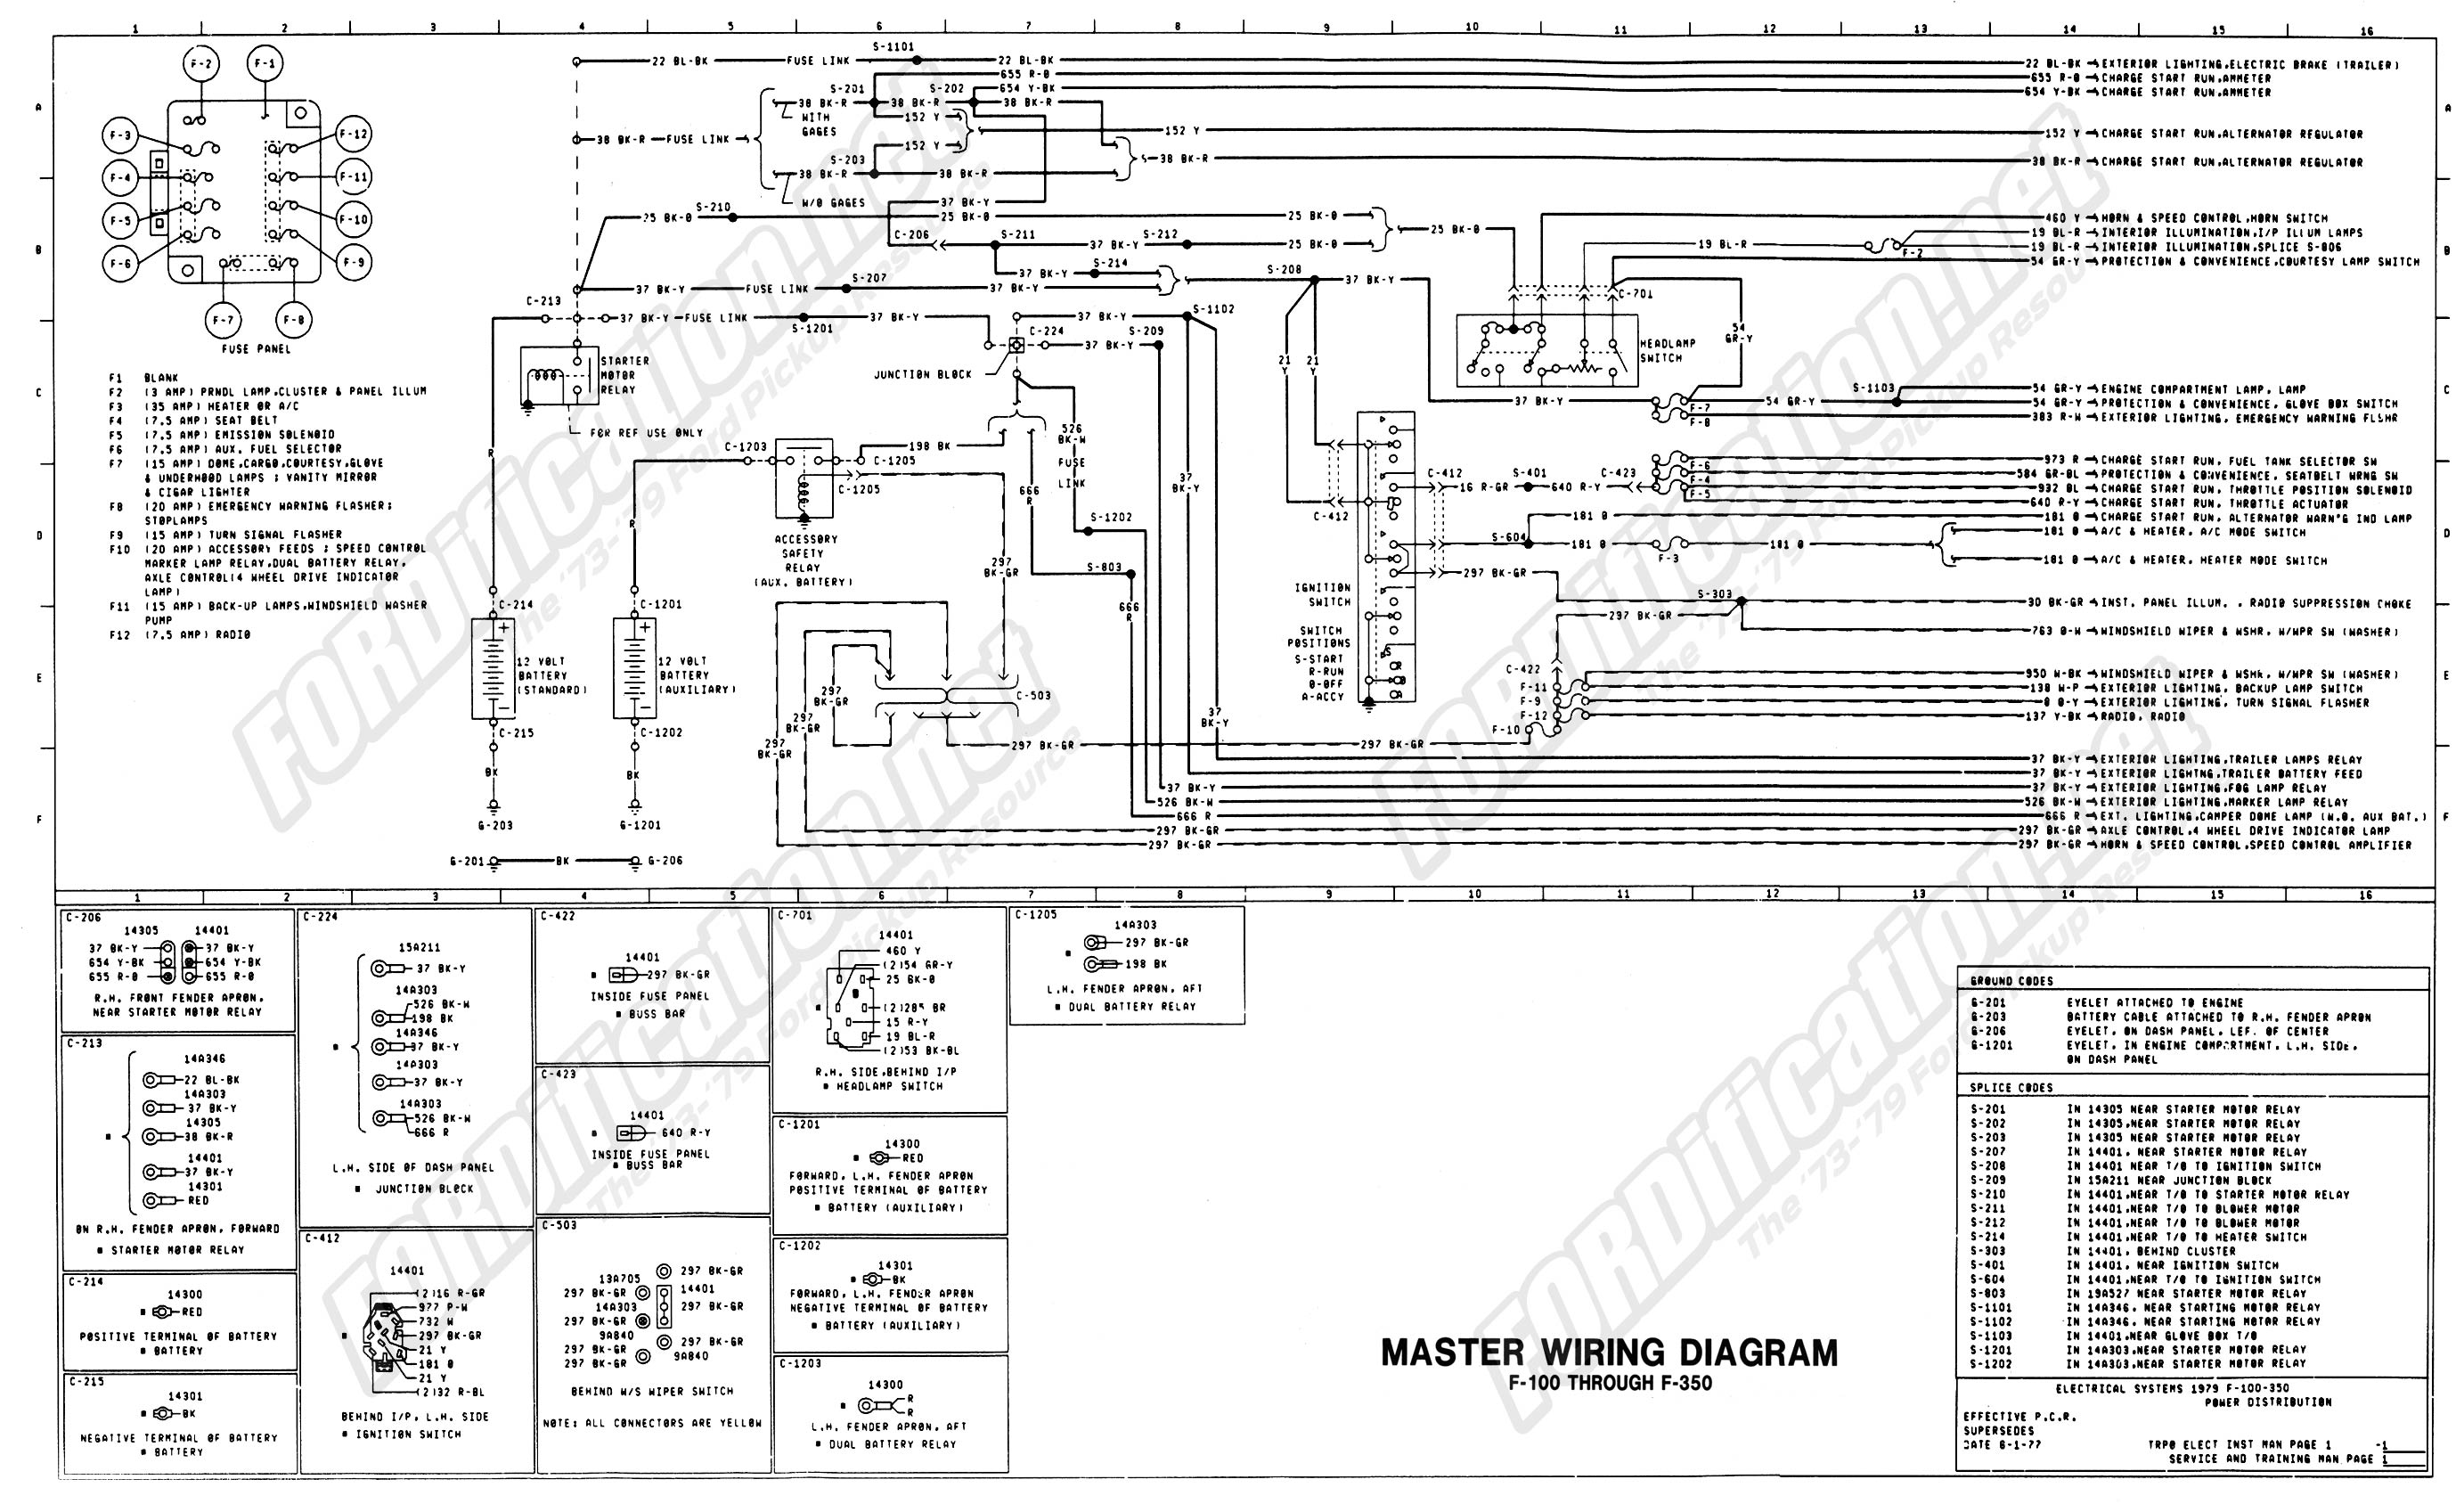 [WQZT_9871]  1979 F100 ignition switch wiring diagram positions? - Ford Truck  Enthusiasts Forums | 1984 Ford L9000 Truck Wiring Diagrams |  | Ford Truck Enthusiasts